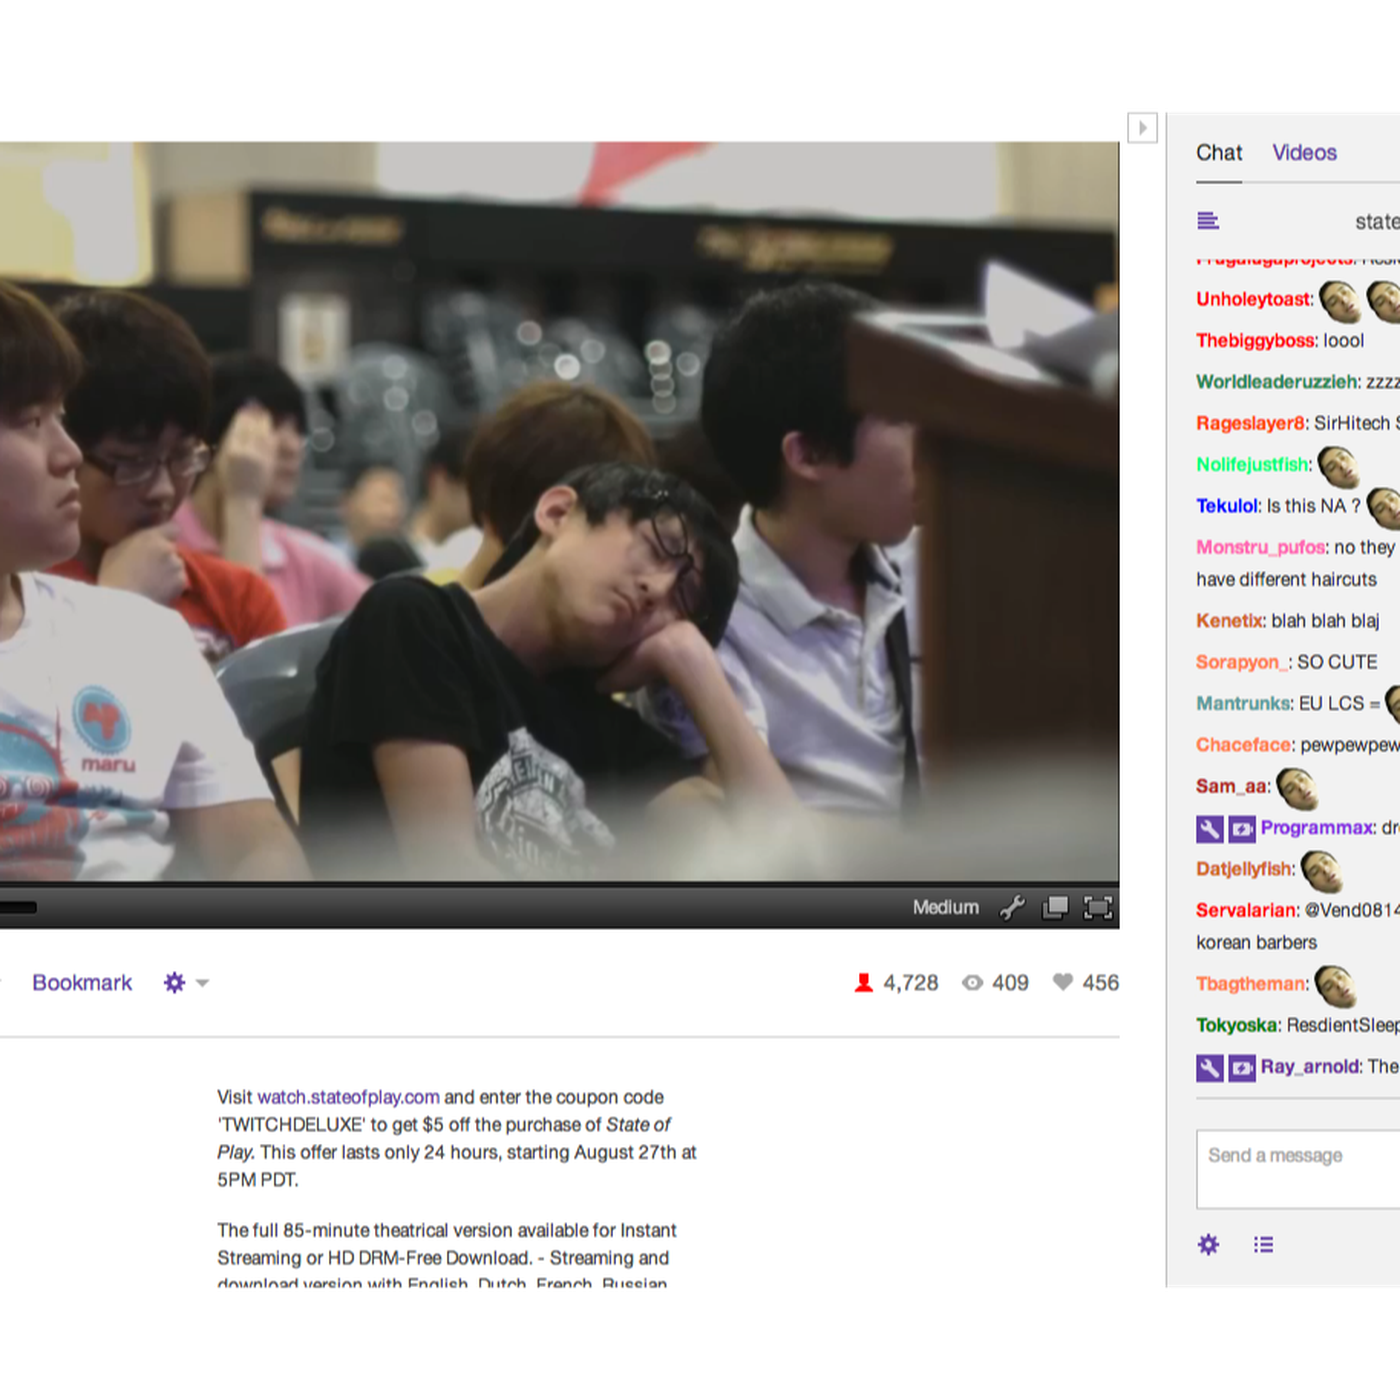 Watching a Movie on Twitch Is Chaotic, and Also Pretty Fun - Vox